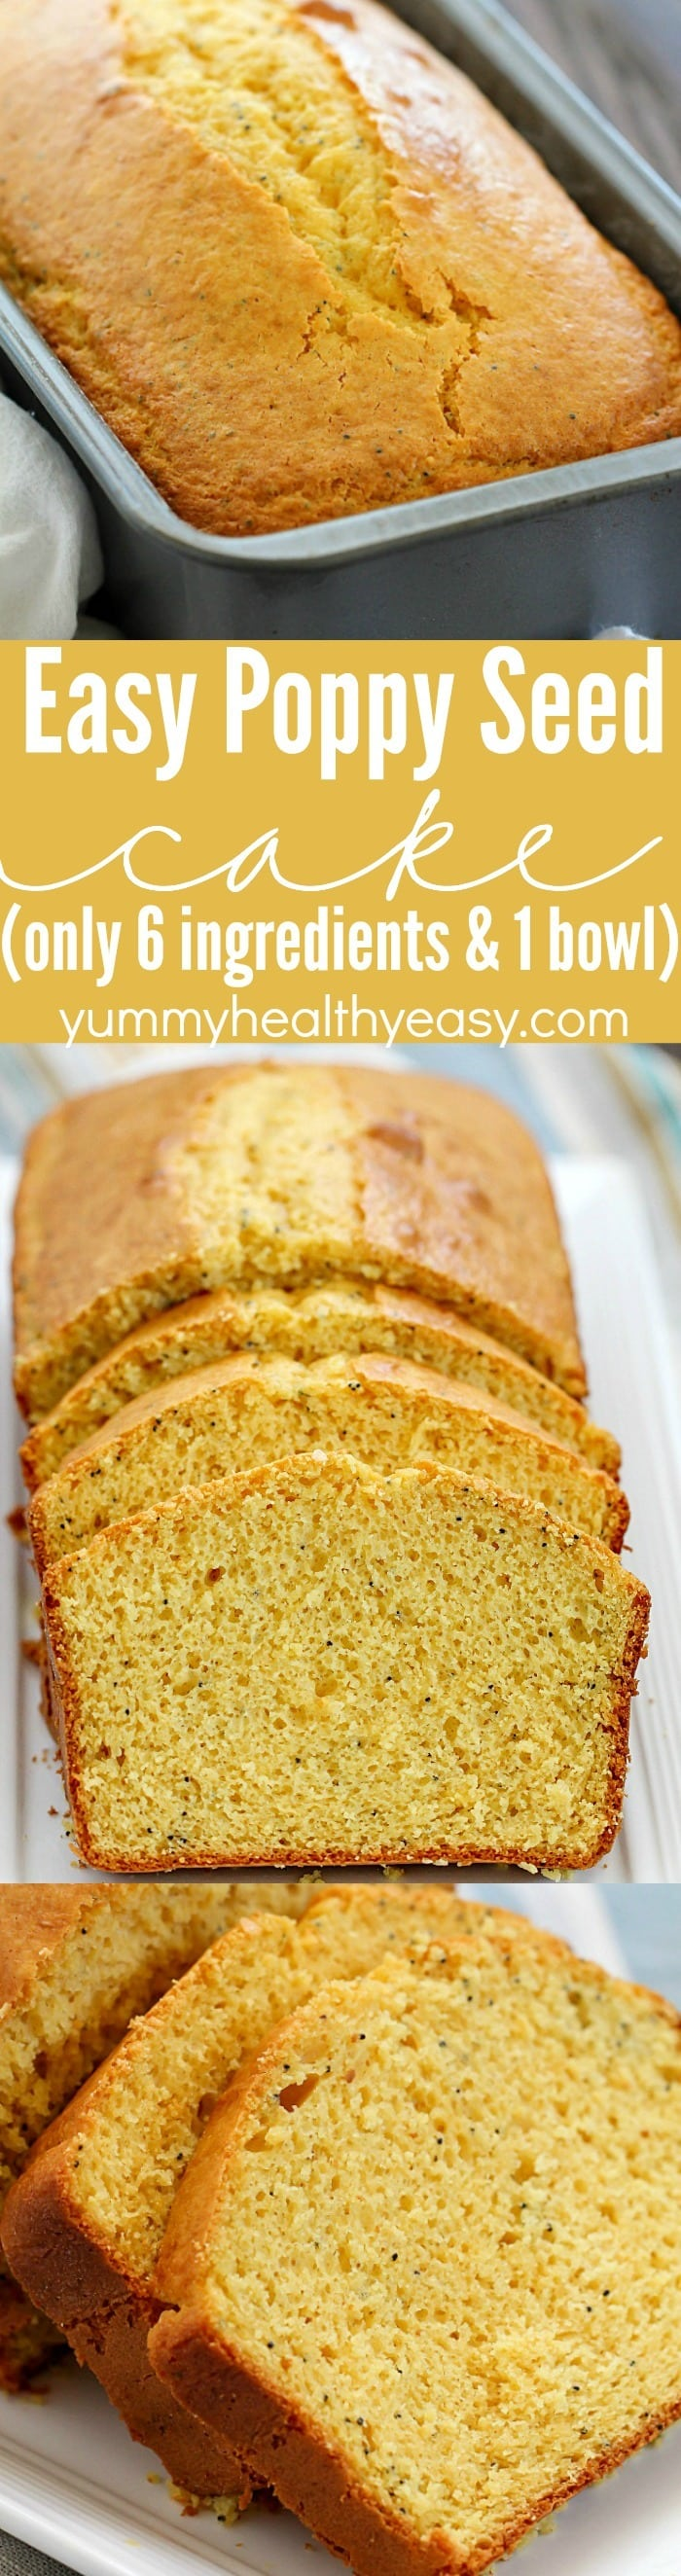 This is the easiest Poppy Seed Cake ever! You only need 6 ingredients and one bowl to make this incredibly soft and flavorful loaf cake!